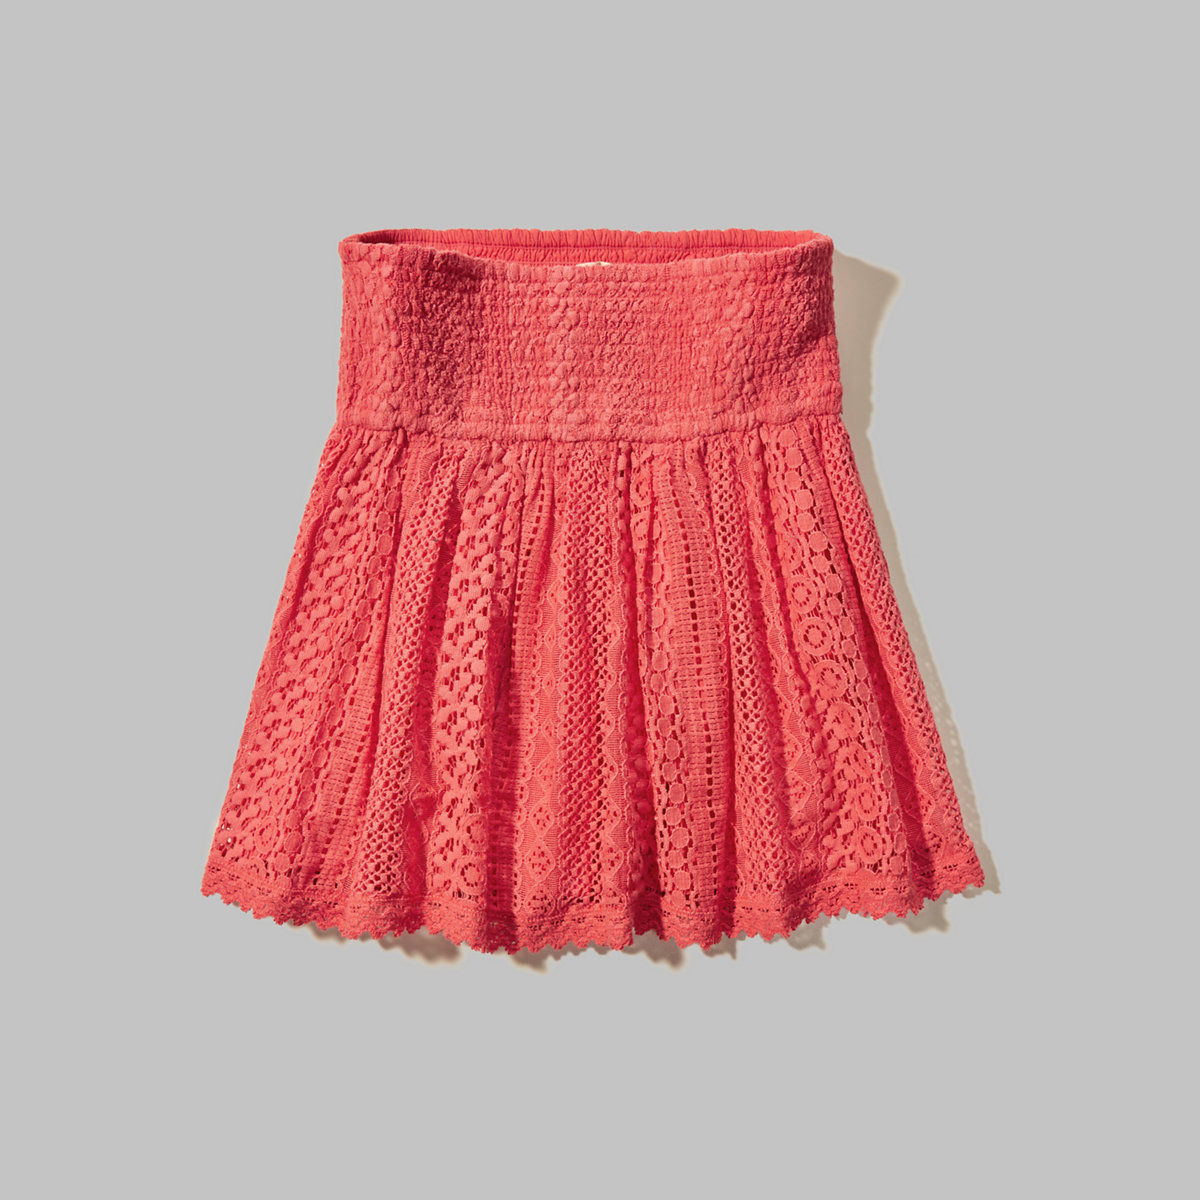 Smocked Lace Skirt